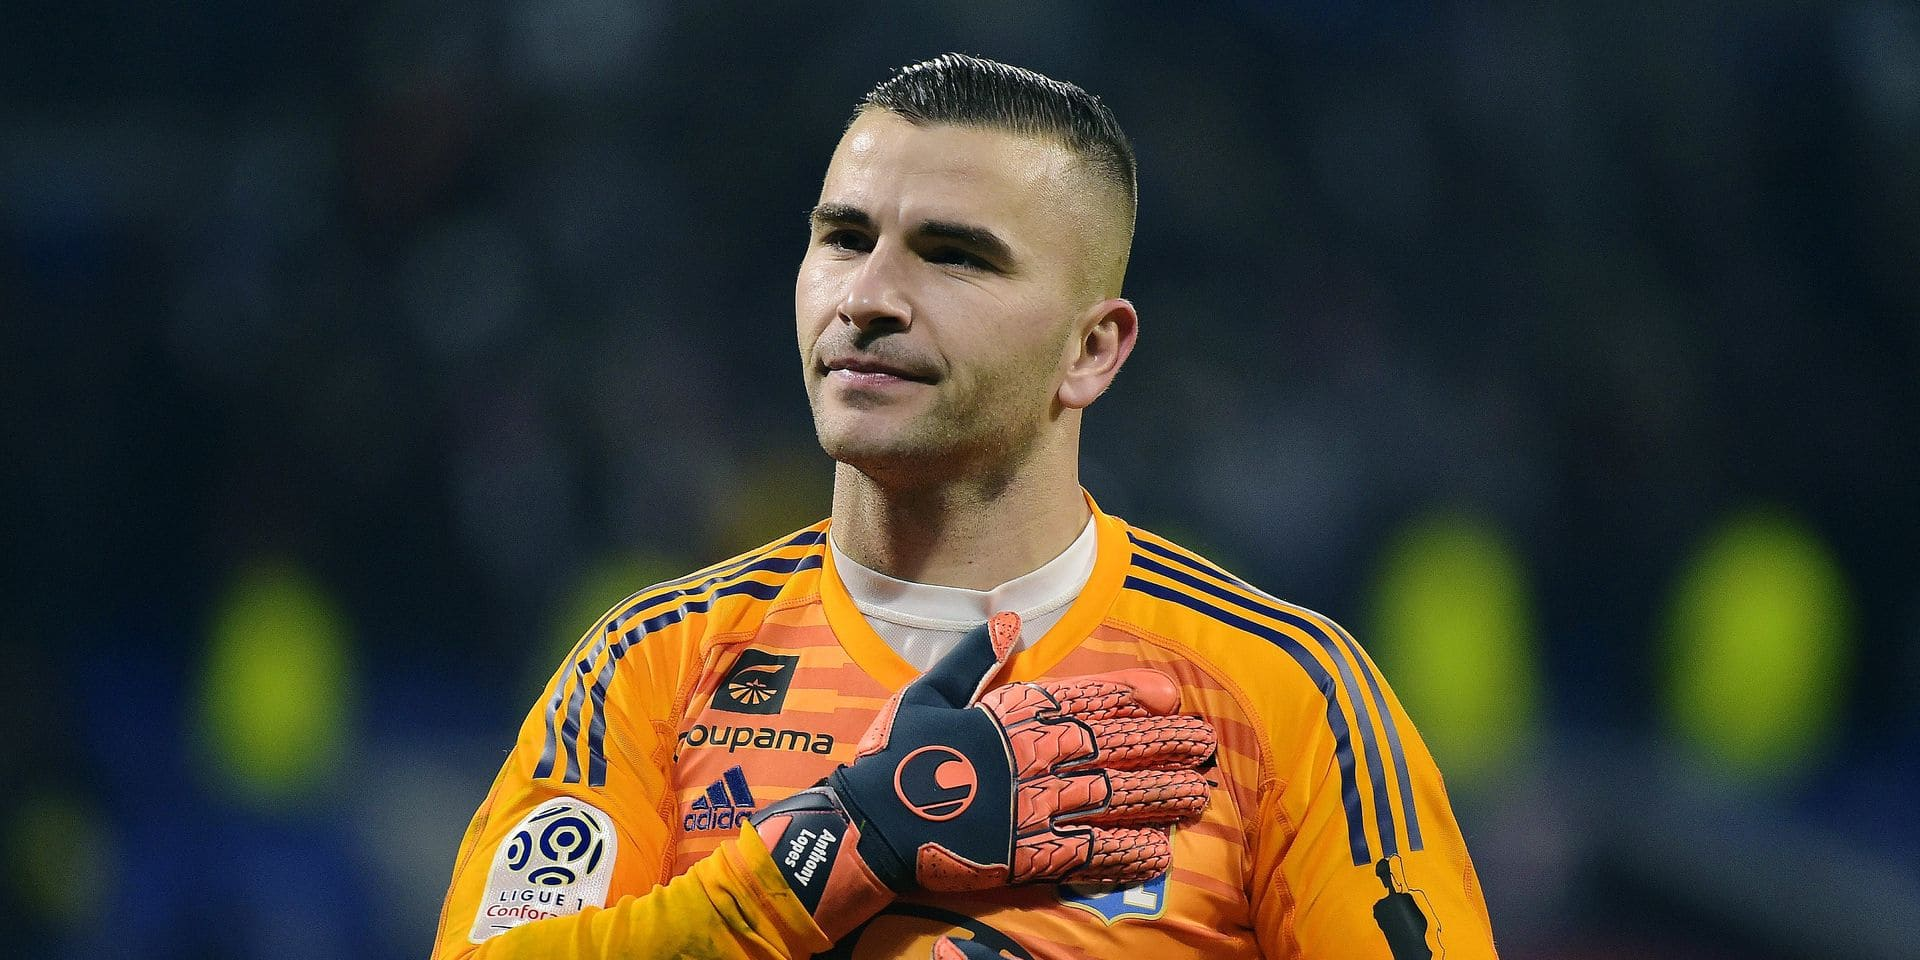 Lyon's Portuguese goalkeeper Anthony Lopes reacts at the end of the French L1 football match between Olympique Lyonnais (OL) and Paris-Saint Germain (PSG) at Groupama stadium in Decines-Charpieu, near Lyon, on February 3, 2019. (Photo by ROMAIN LAFABREGUE / AFP)